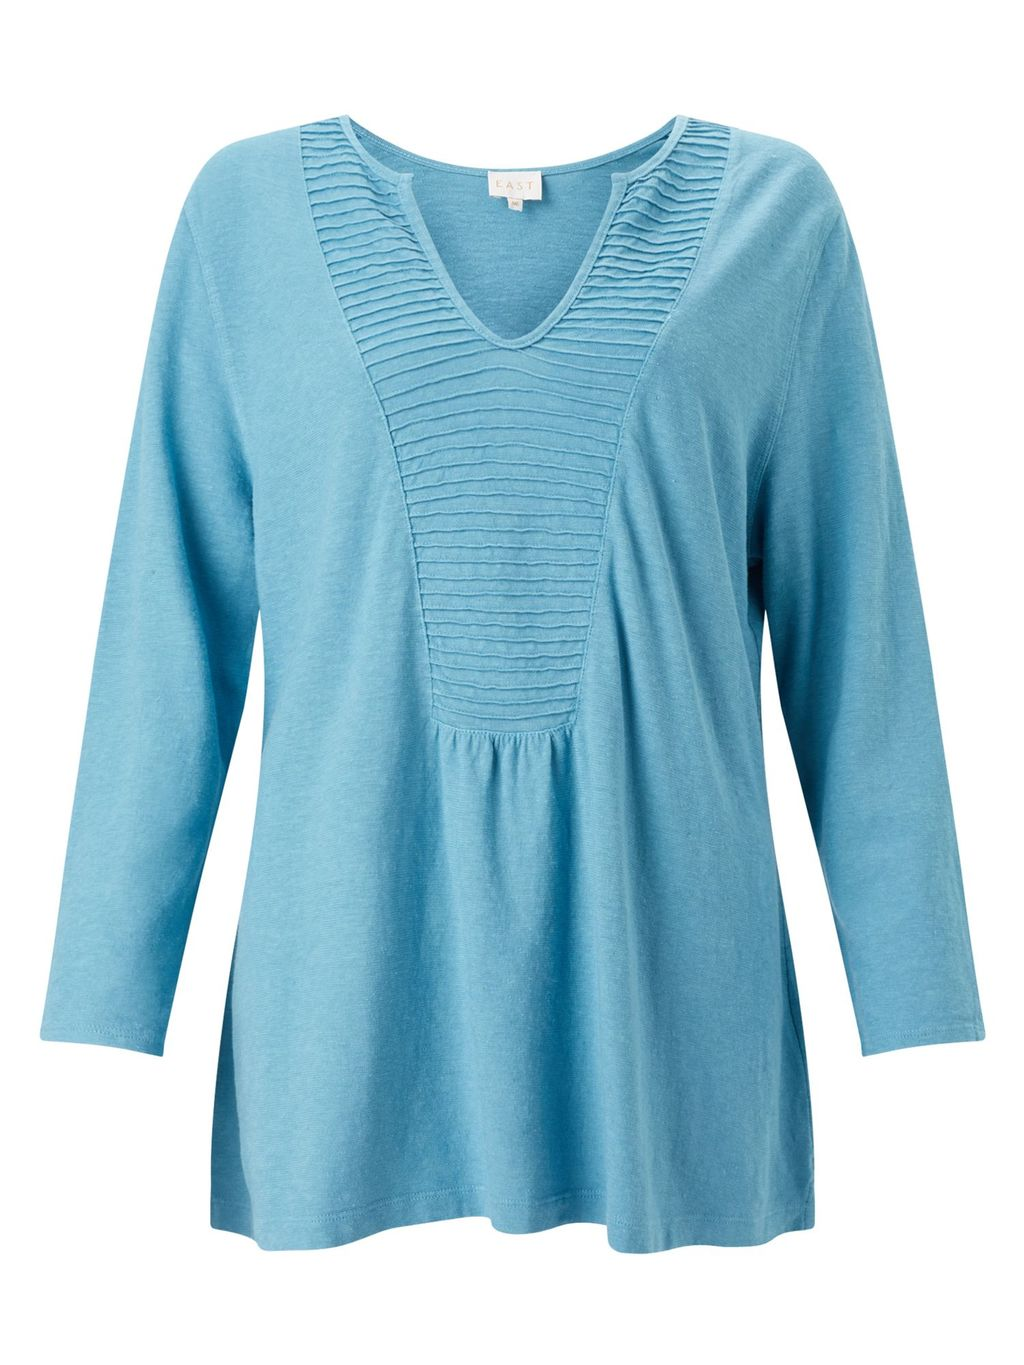 Pintuck Yoke Top, Blue - neckline: v-neck; pattern: plain; predominant colour: pale blue; occasions: casual, creative work; length: standard; style: top; fibres: cotton - mix; fit: loose; sleeve length: 3/4 length; sleeve style: standard; pattern type: fabric; texture group: jersey - stretchy/drapey; season: a/w 2016